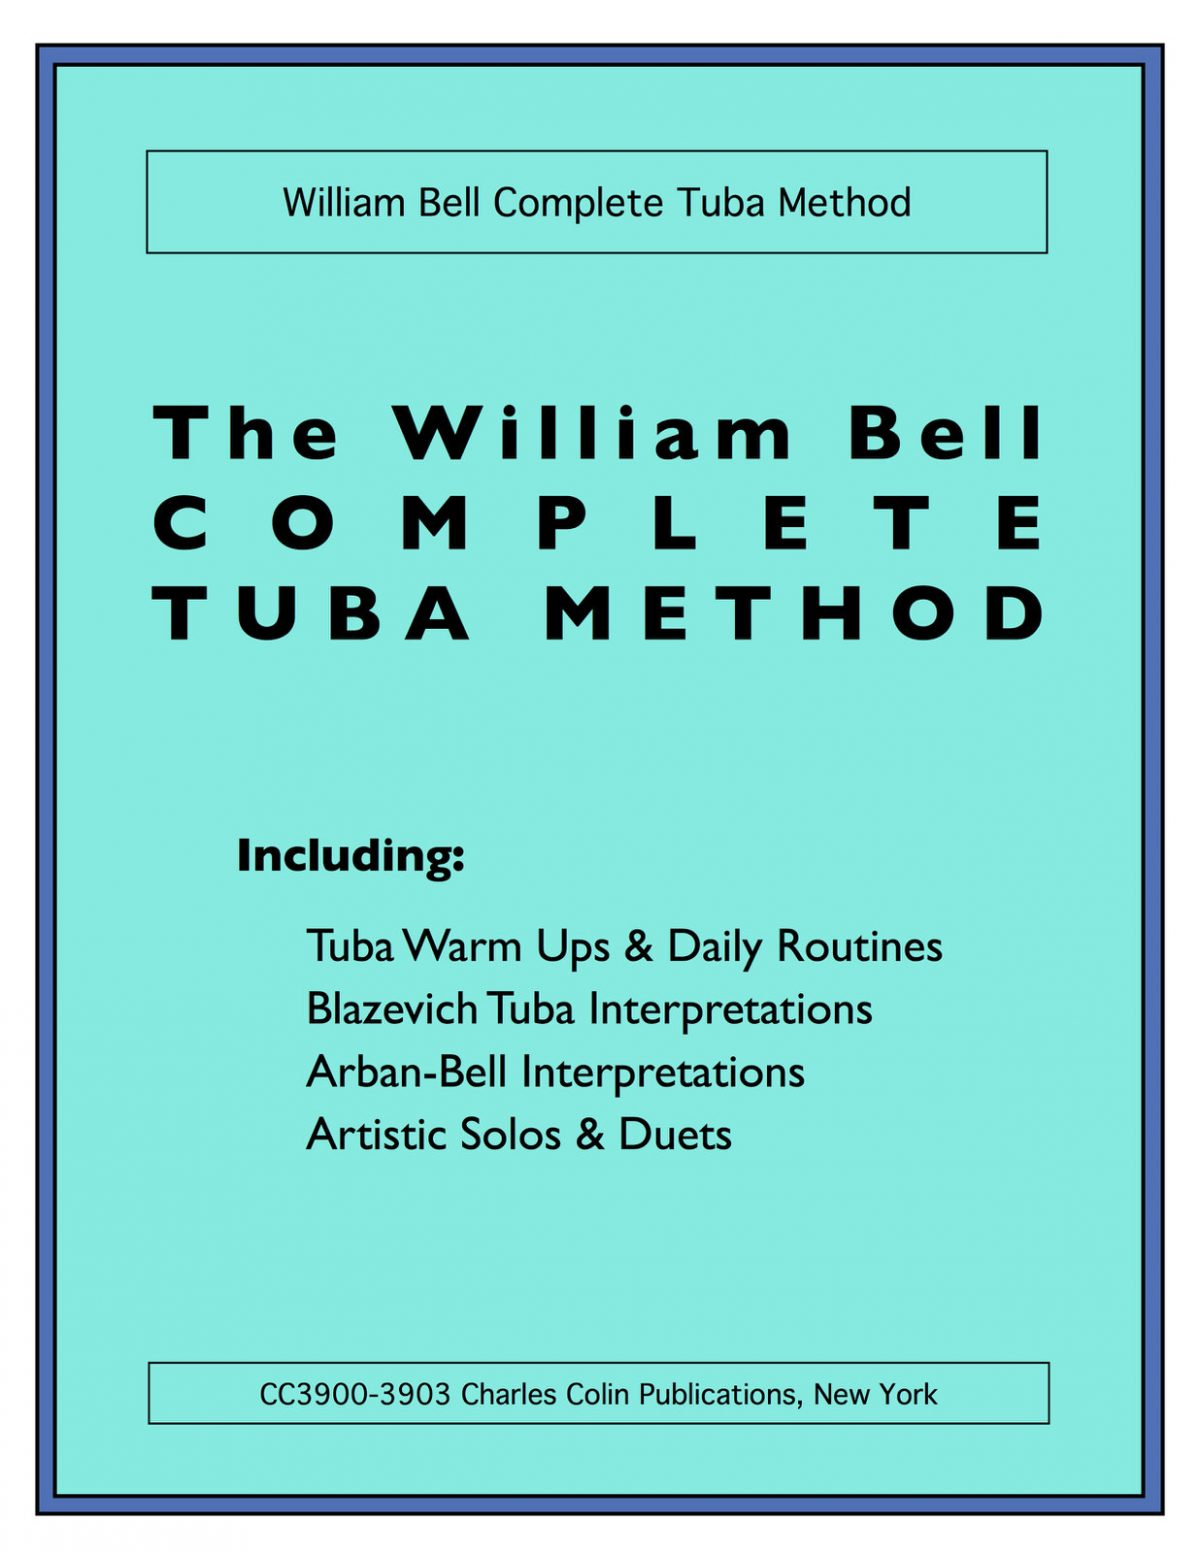 Bell Complete Method Cover